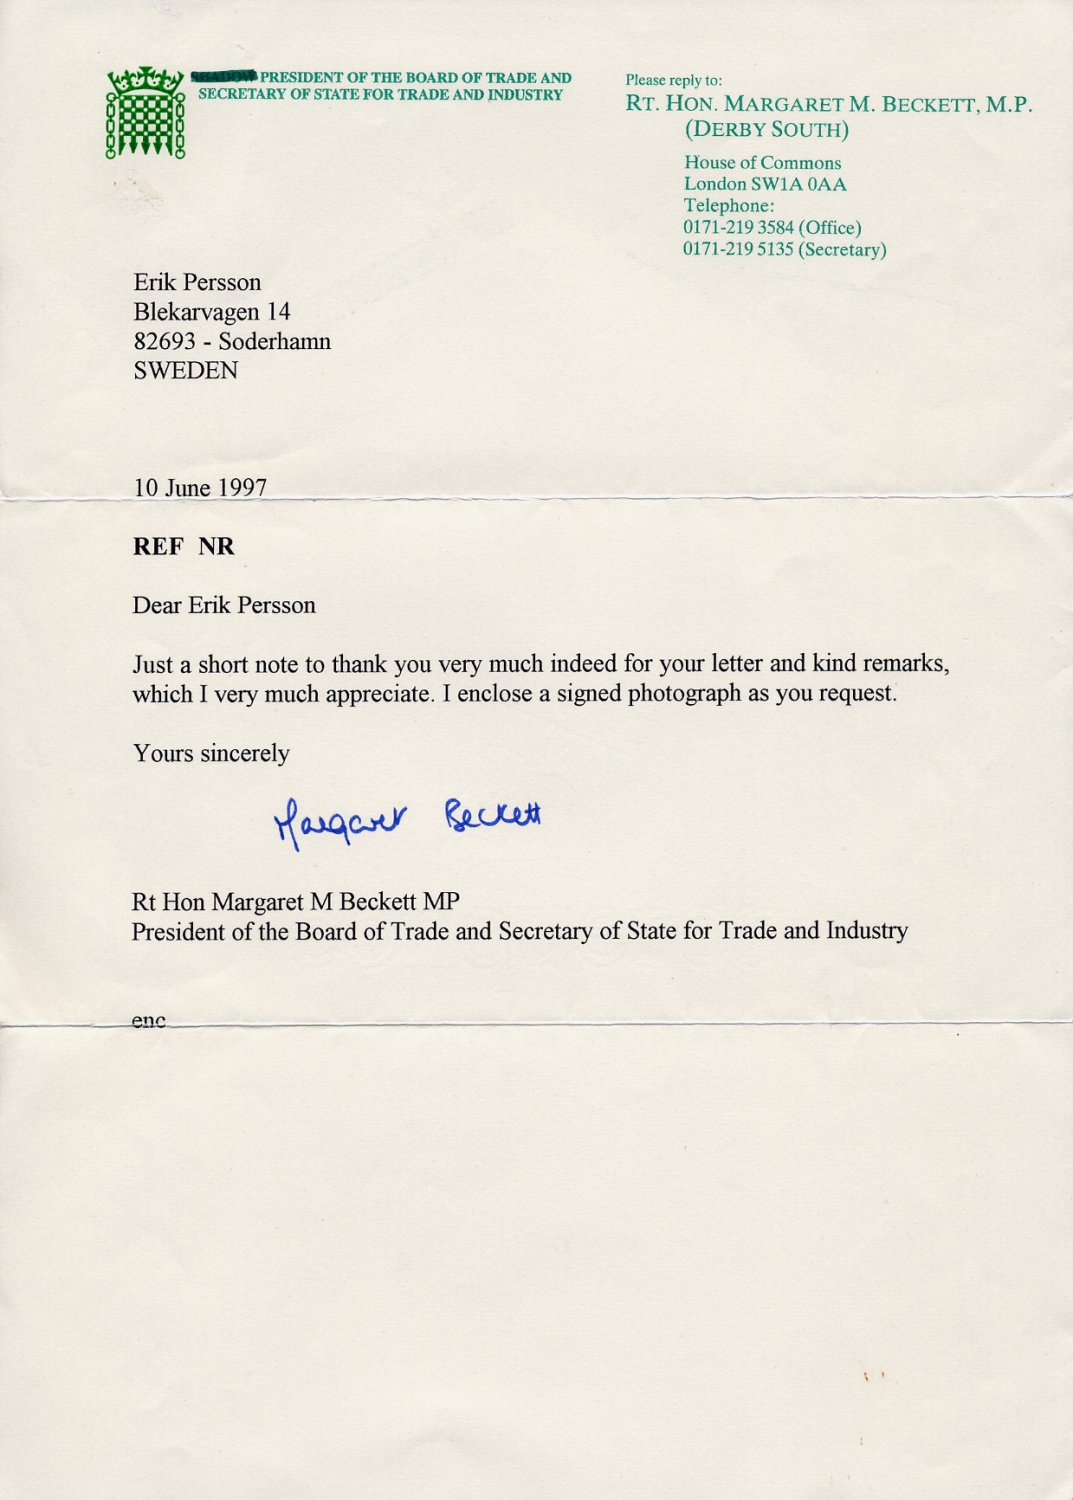 British Labour Party Politician & Foreign Secretary Dame MARGARET BECKETT Typed Letter Signed 1997